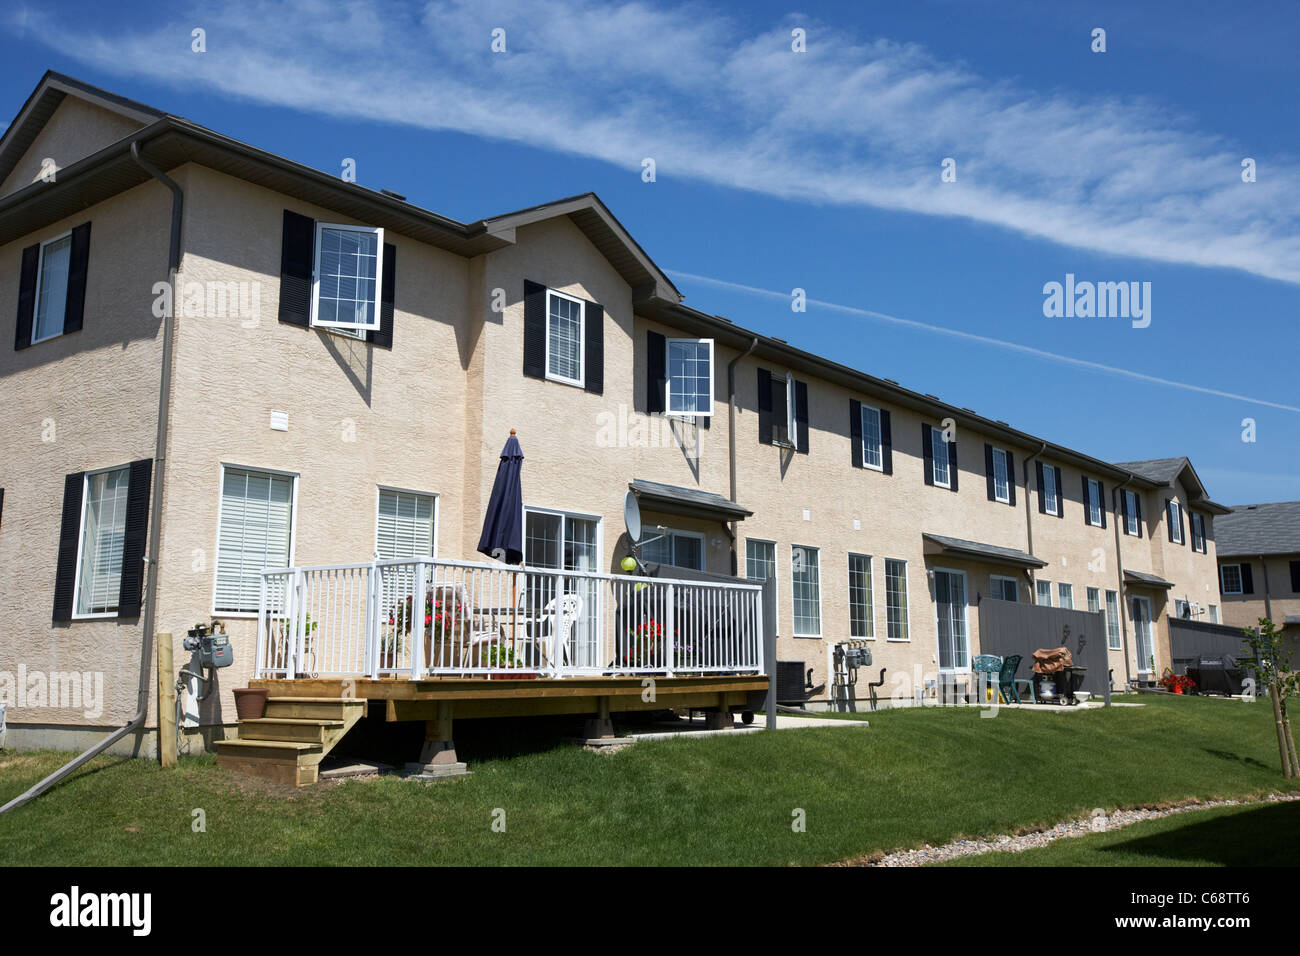 rear of row of townhouses starter homes some with decking on managed property Saskatoon Saskatchewan Canada - Stock Image